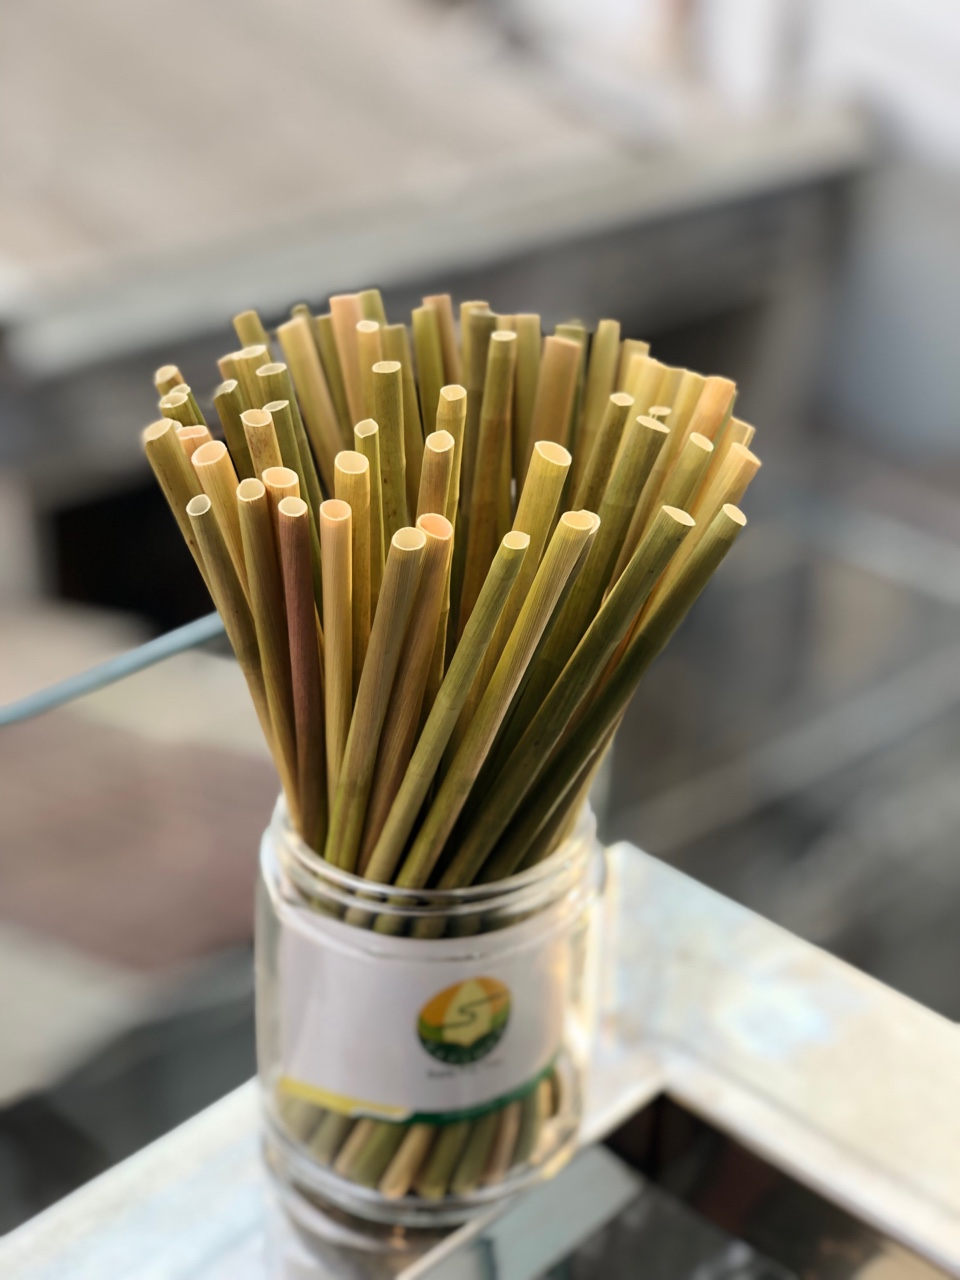 Grass Straws/Eco-Friendly Products/Biodegradable Products